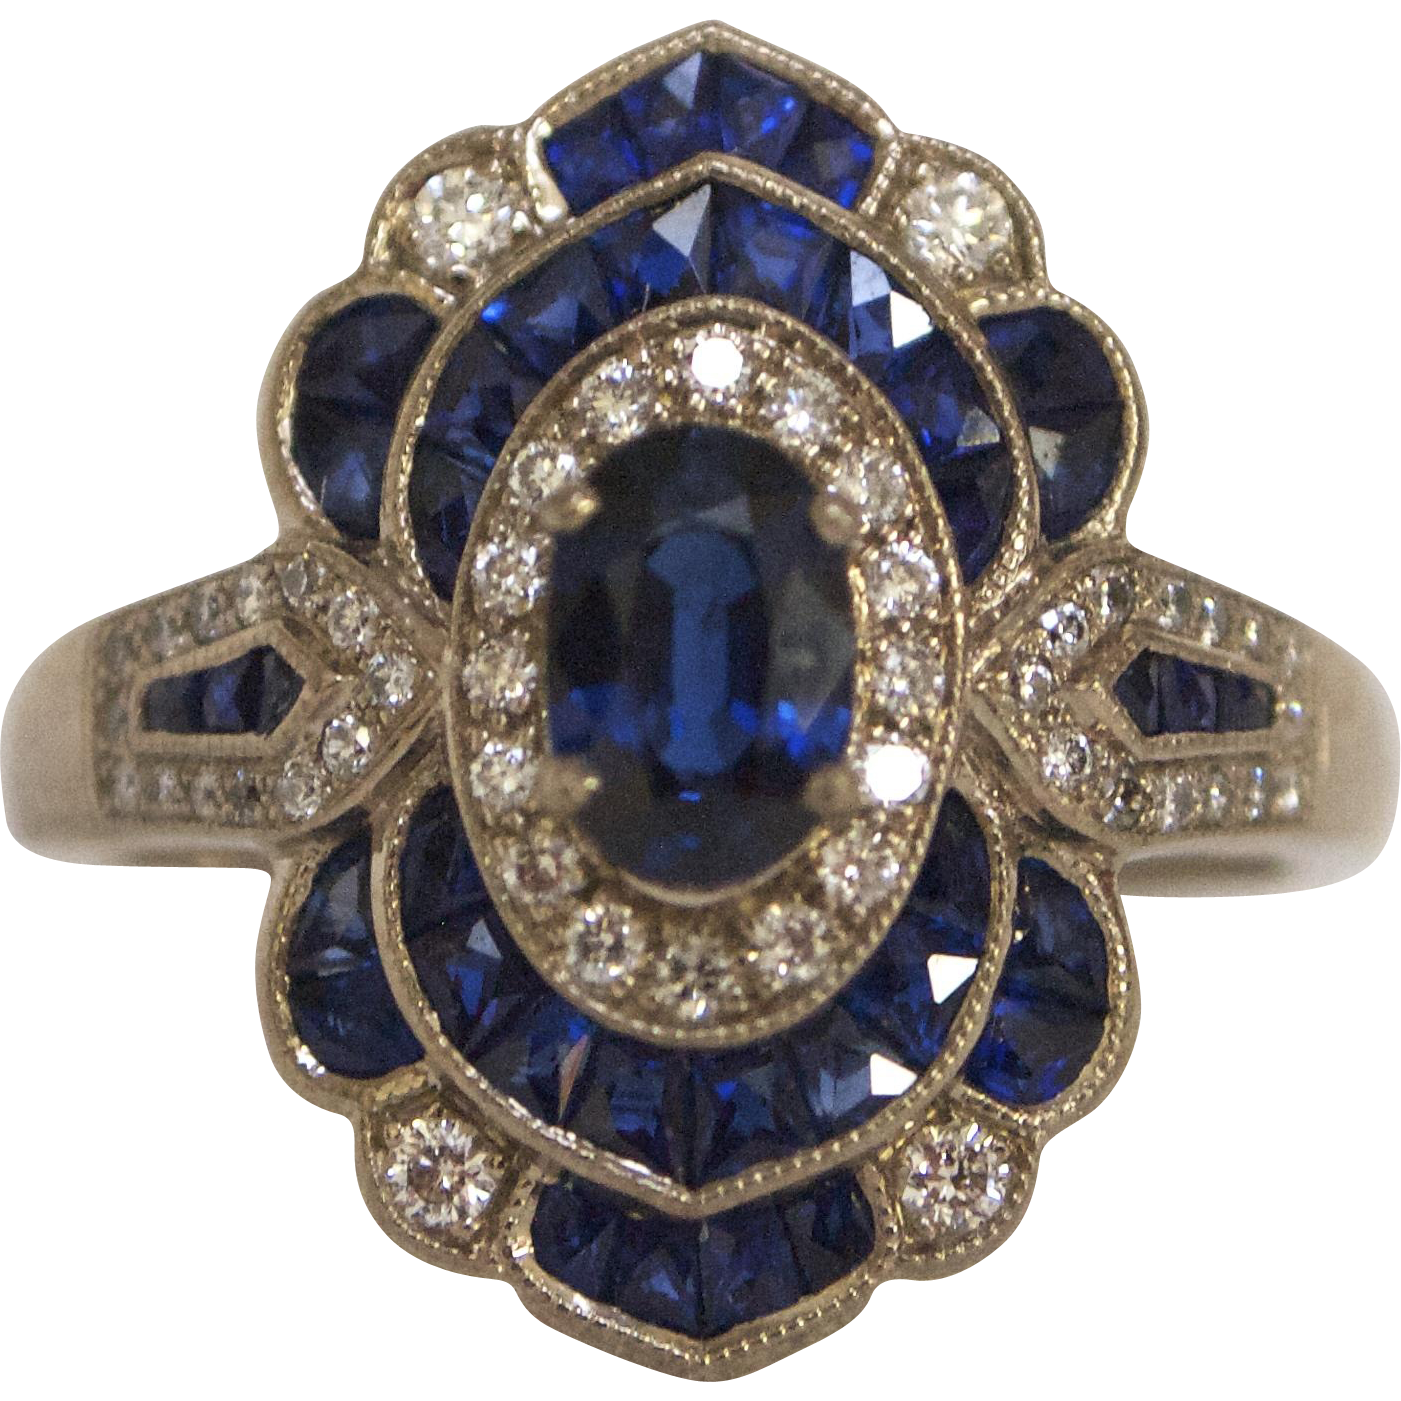 of how sapphires and tips on buying point speaking gem deep price with once learn push guide definitive deeper up gets sapphire color generally certain tone the to saturation pictures however rock will a more buy blue